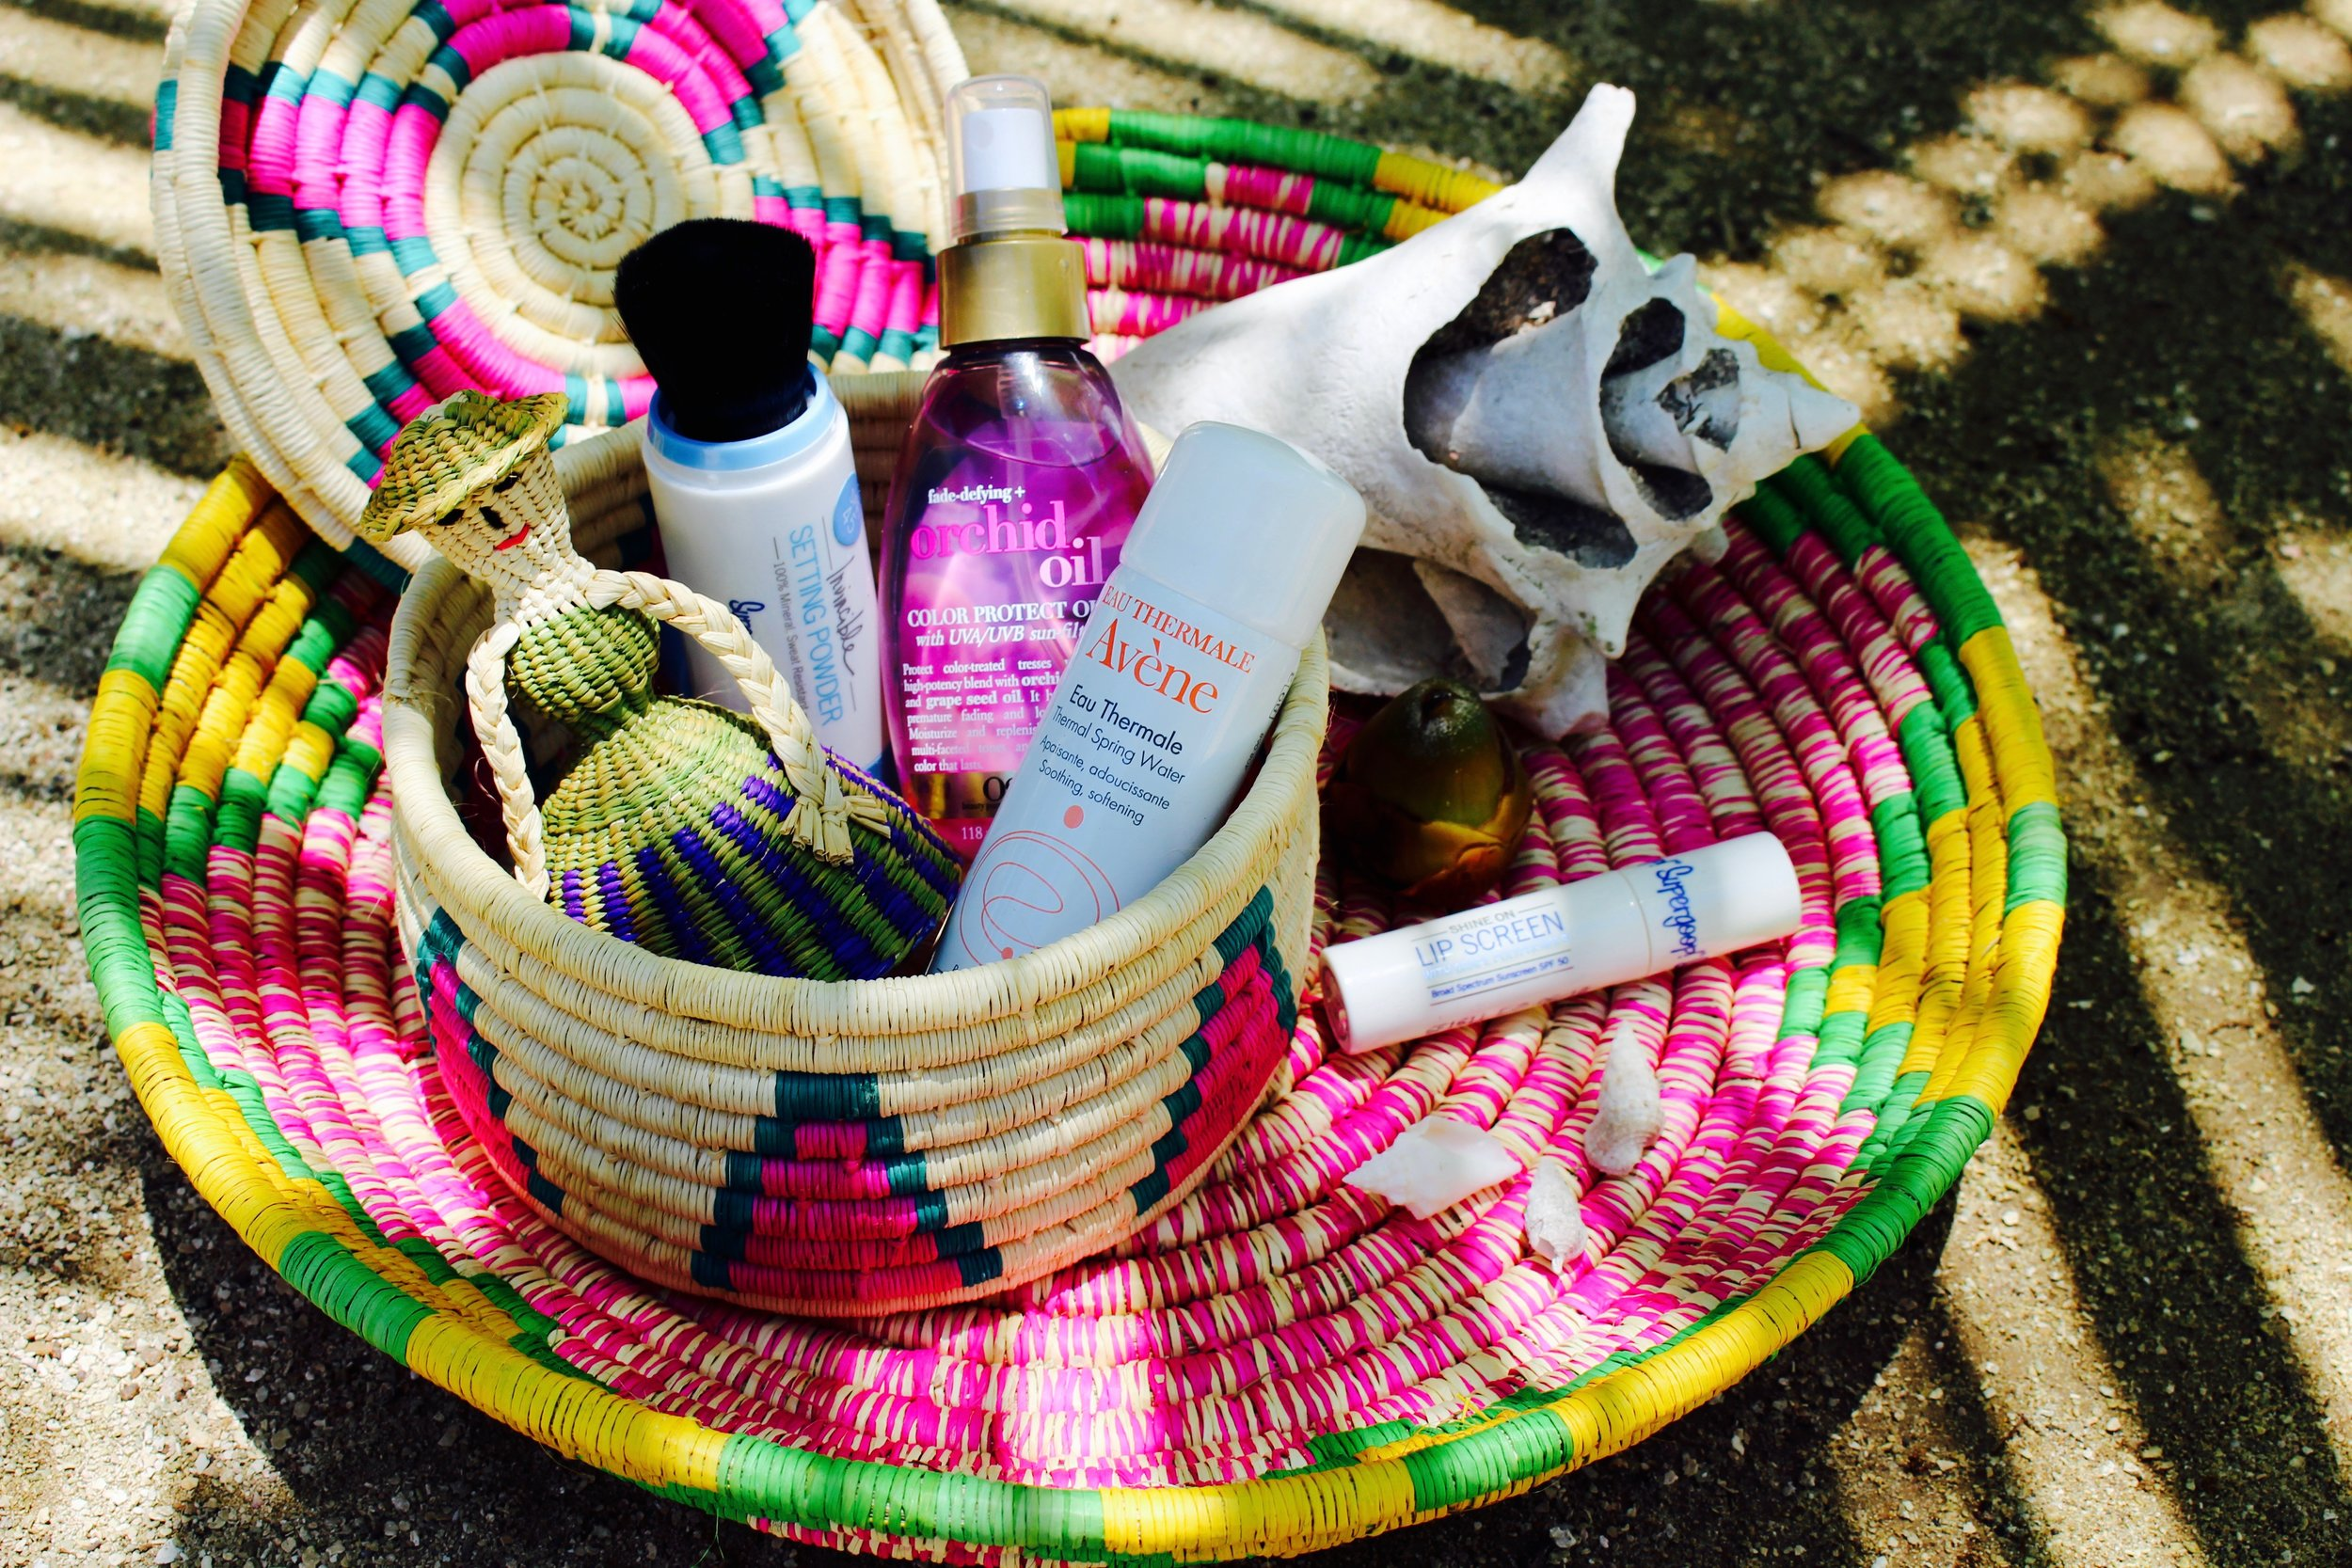 A couple of my favorite products I staged with my new souvenirs from the Maya Key gift shop